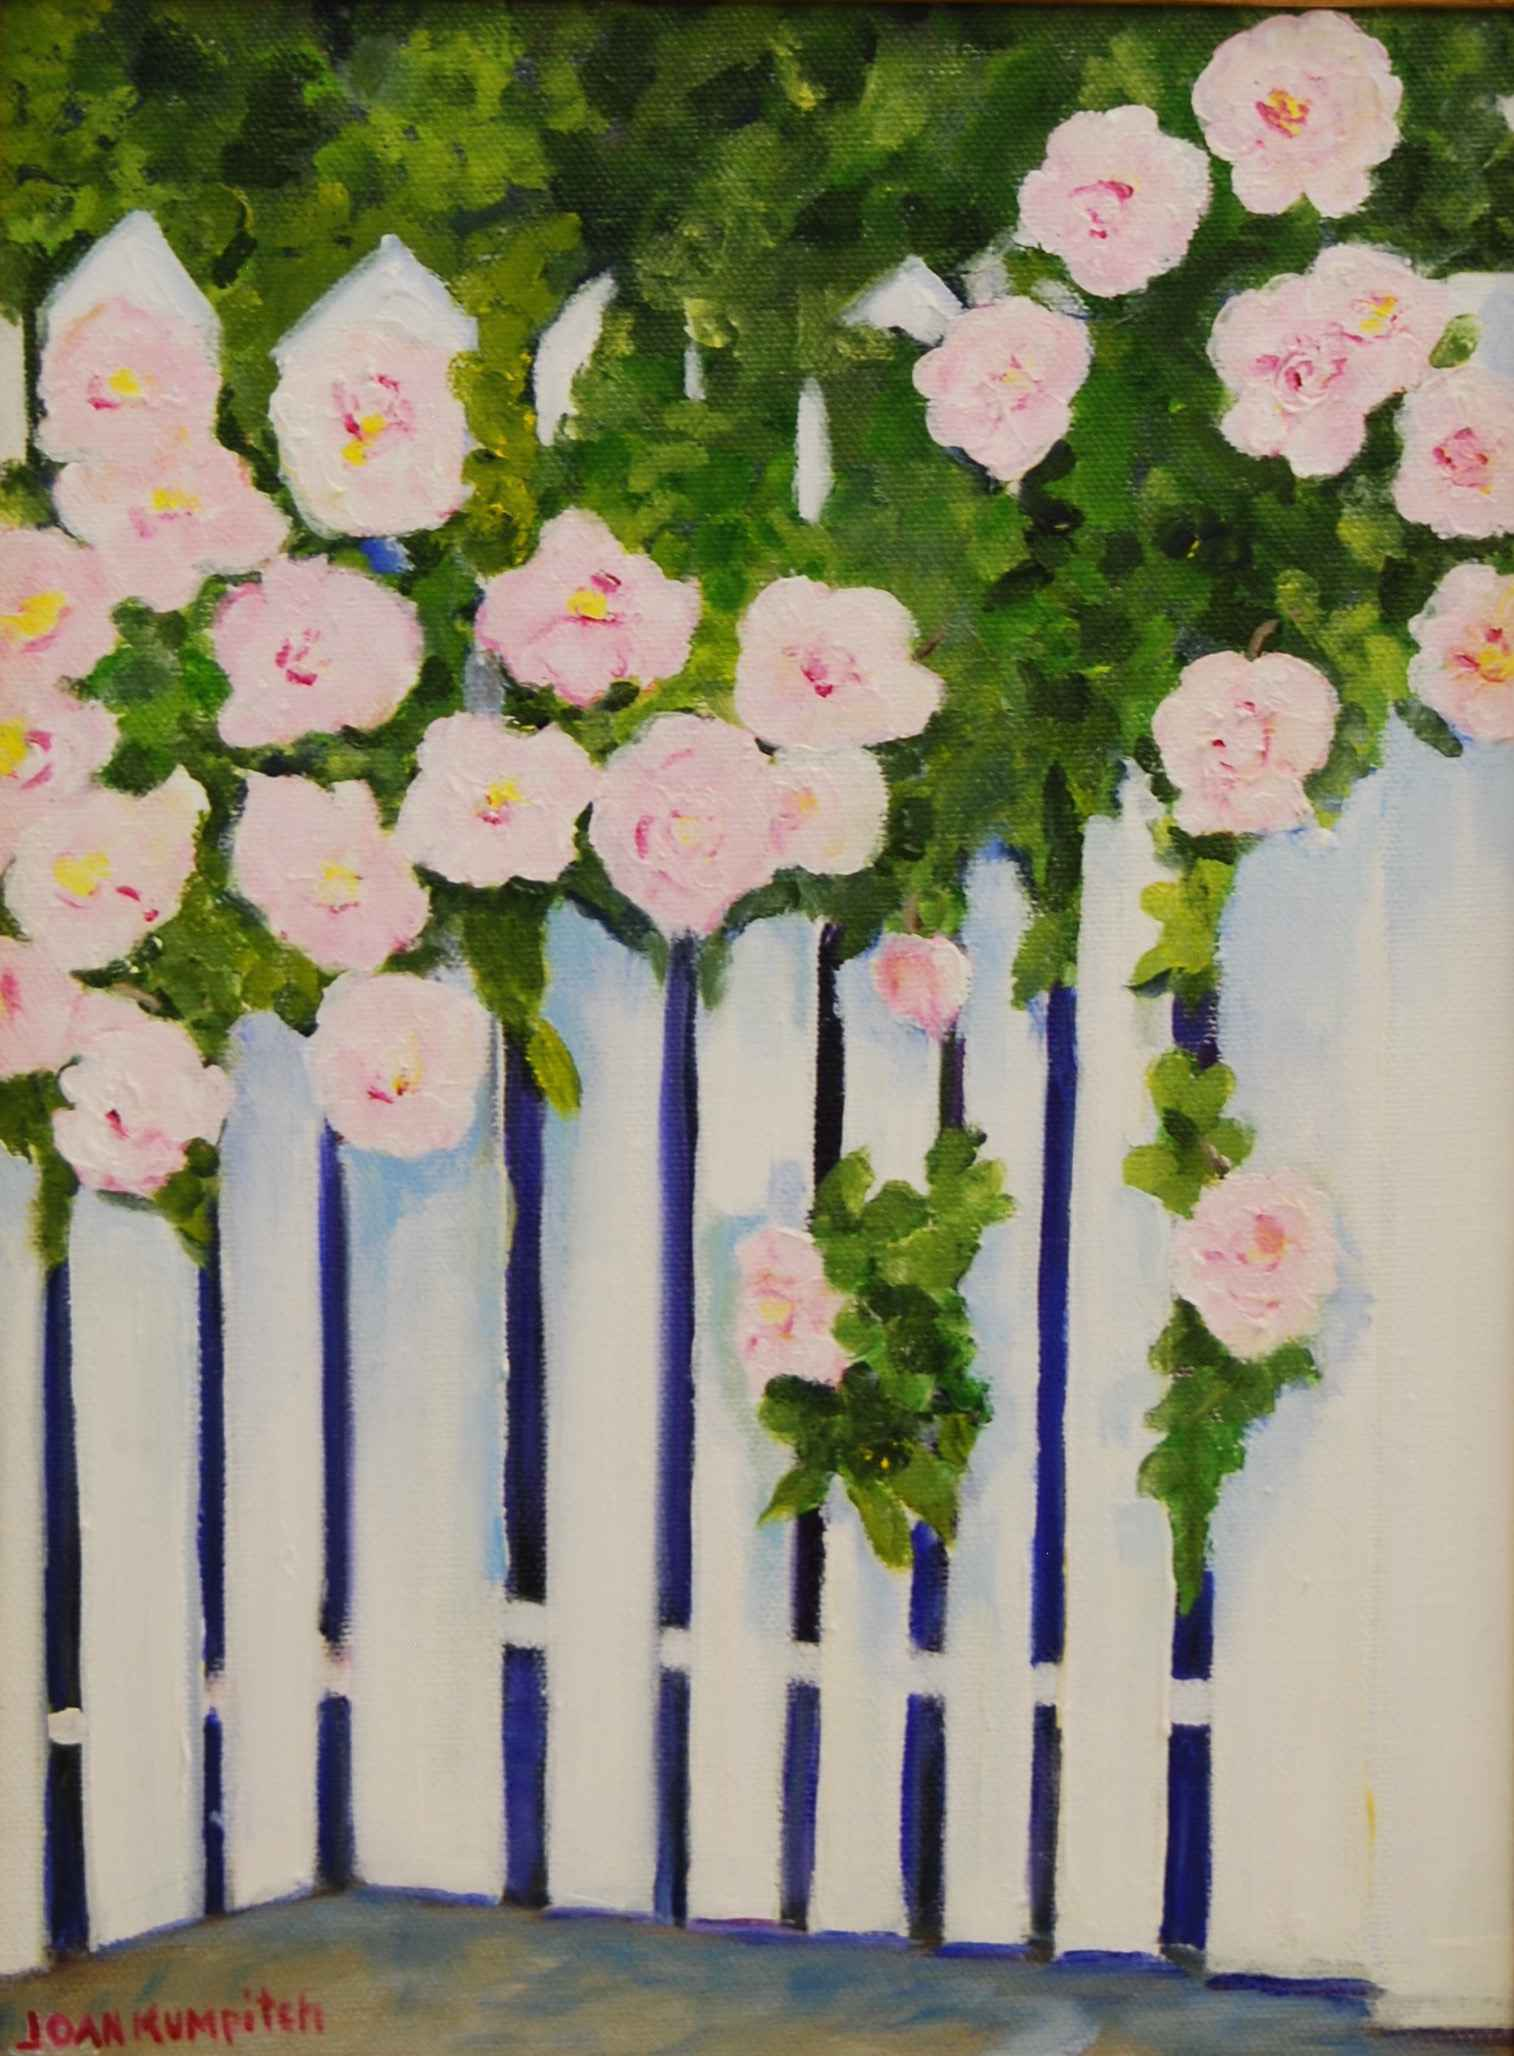 Edgartown Roses by  Joan Kumpitch - Masterpiece Online